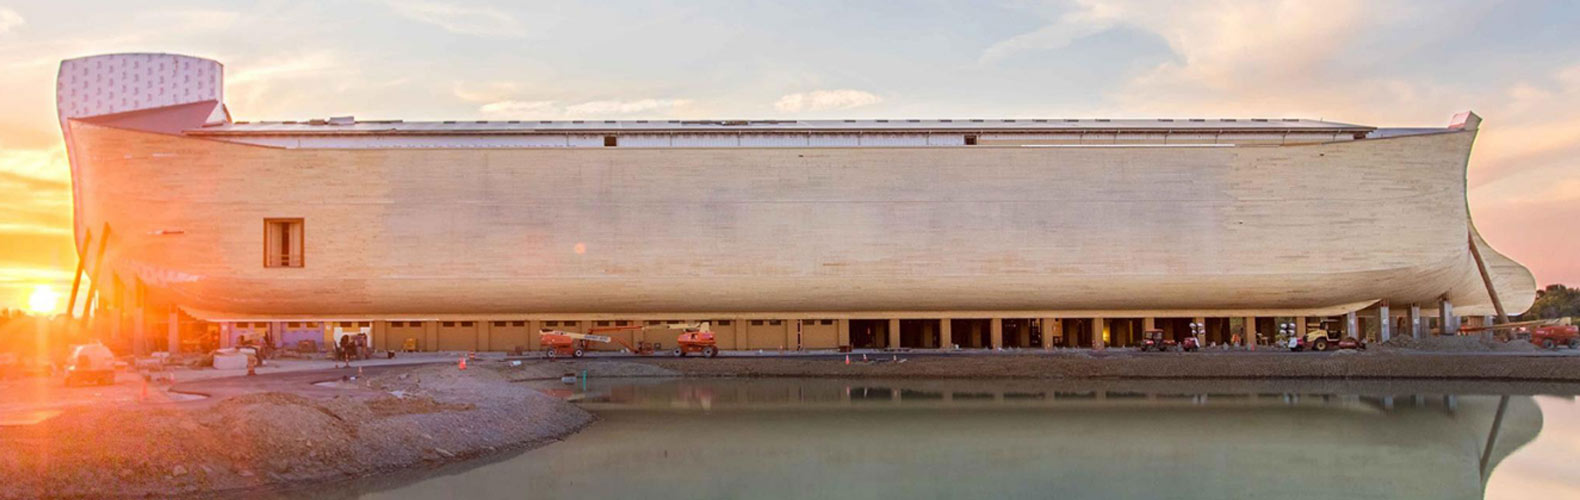 Architecture, ark, Ark Encounter, flash flood, flash flooding, flood, flooding, floods, kentucky, life-size noah's ark, noah's ark, religion, religious architecture